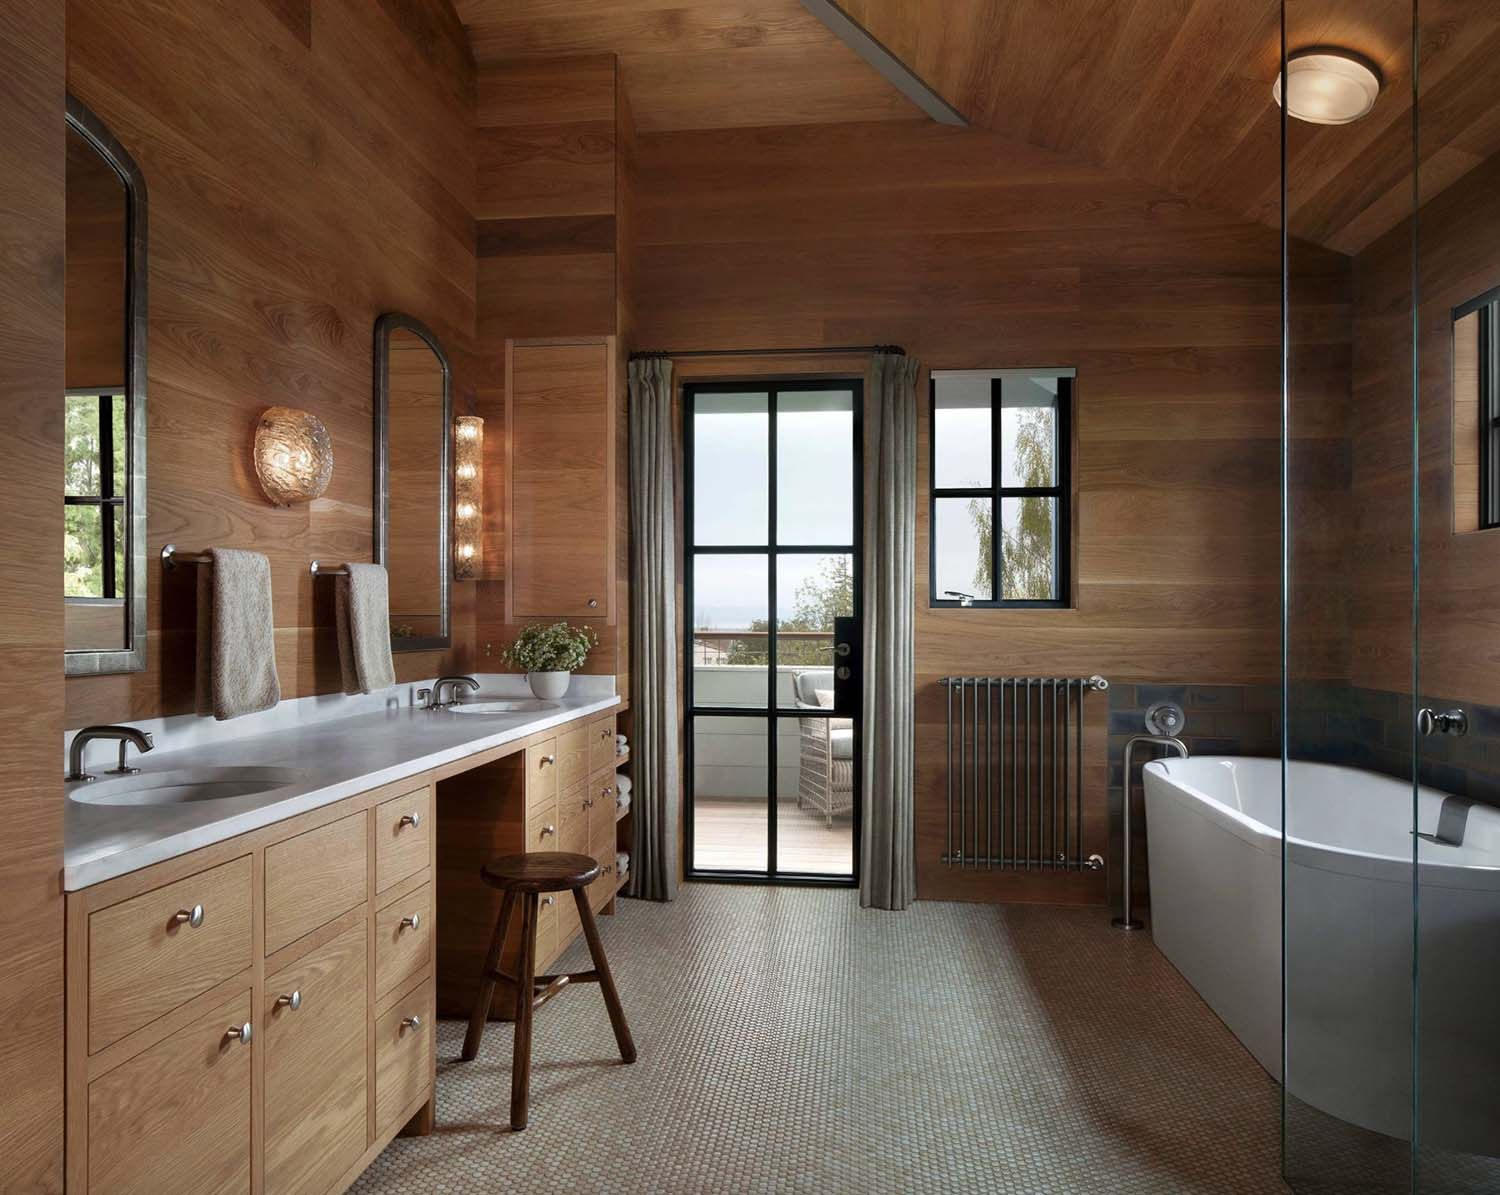 Leed Platinum Residence Gets Remarkable Transformation In San Francisco Craftsman Style Bathrooms House Design Residential Interior